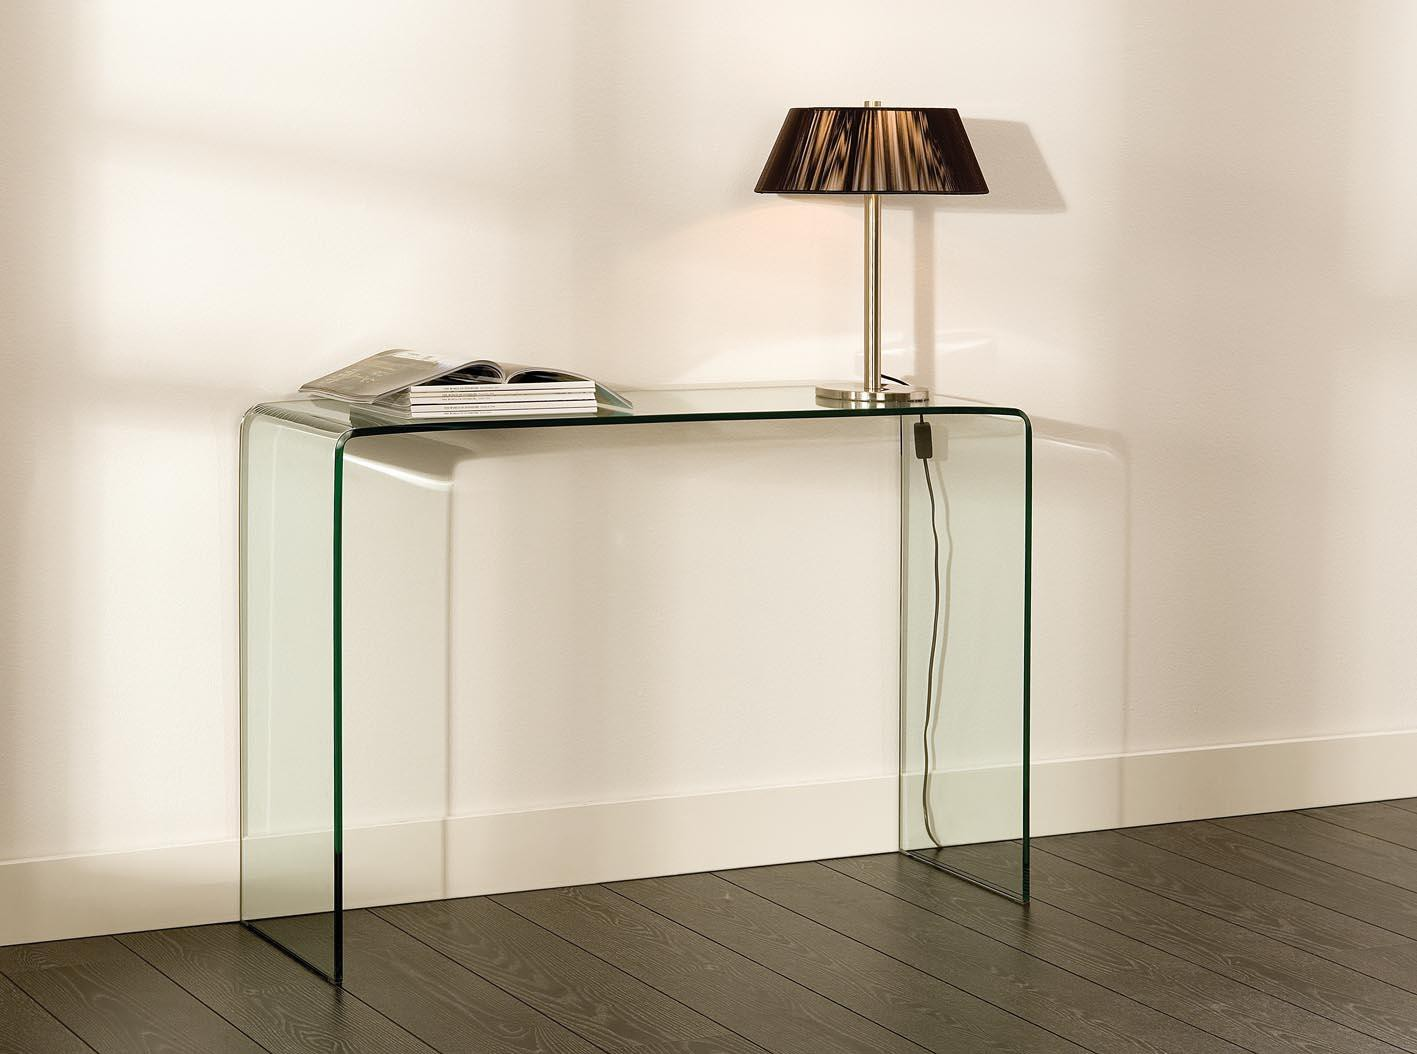 Side Table Van Glas.Glazen Side Table Biarritz